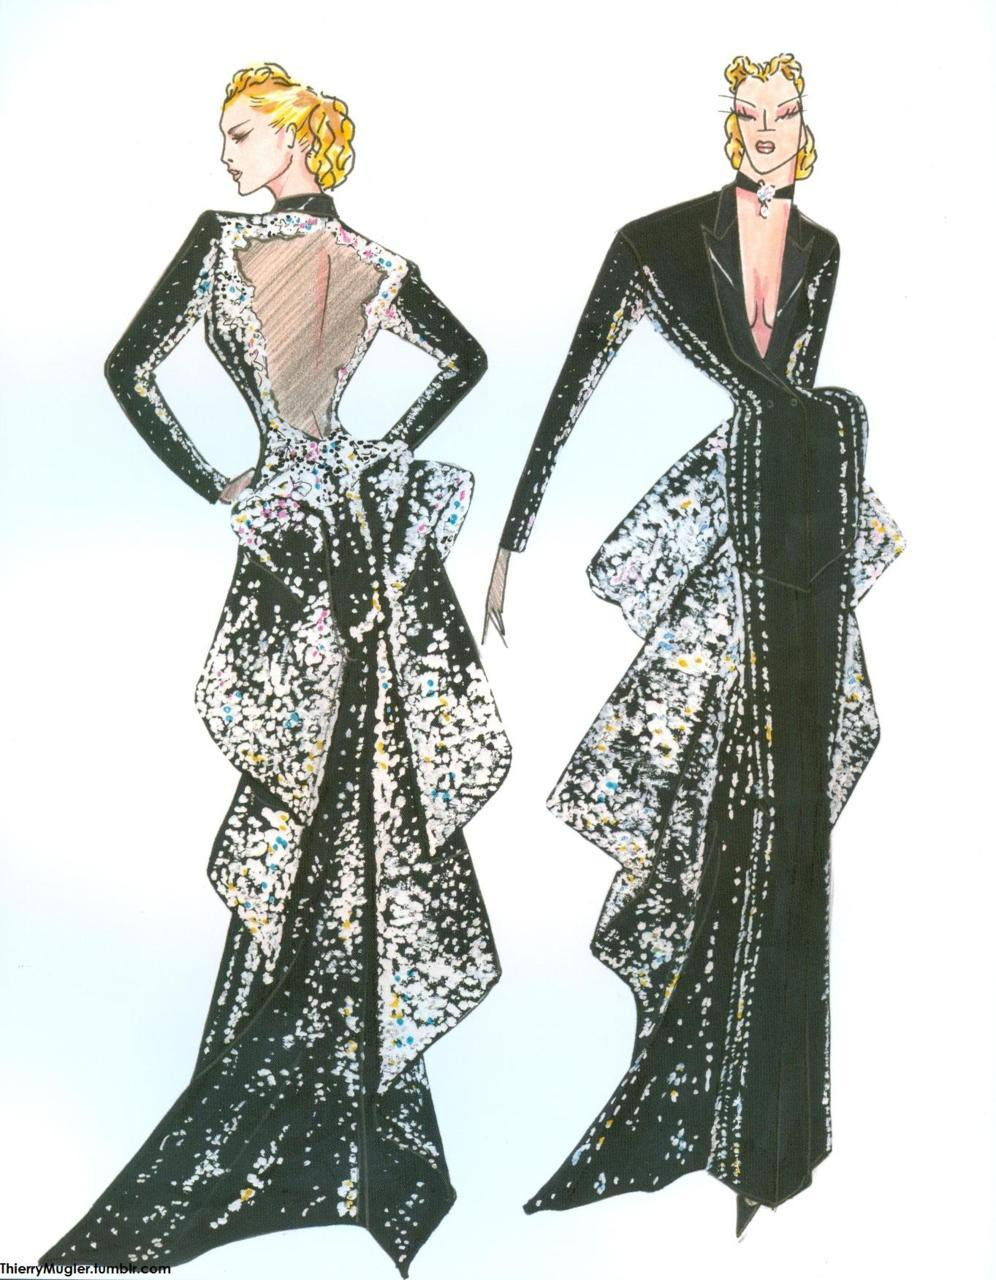 Sketch by Thierry Mugler for Simmonetta Gianfellici, a smoking jacket in black grain de poudre and satin with a transparent back and diamante-embroidered train.  Ritz Couture Collection, AW 1992-93  Thierry Mugler: Galaxy Glamour